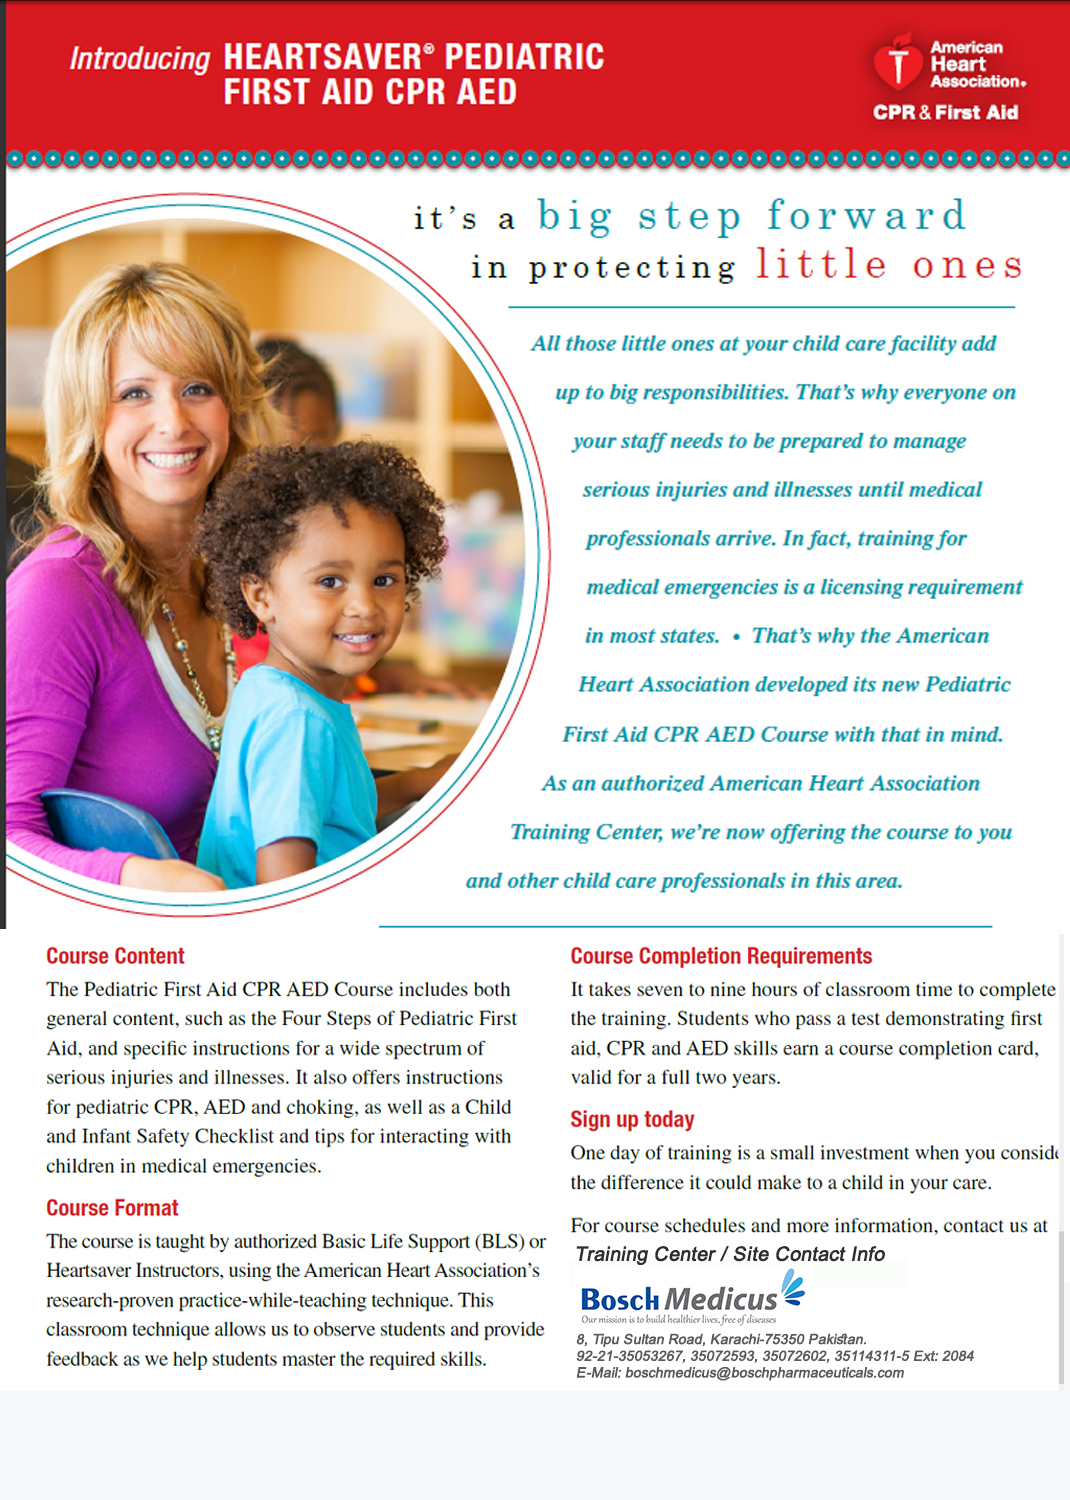 2015 Heartsaver Pediatric CPR Course Flyer